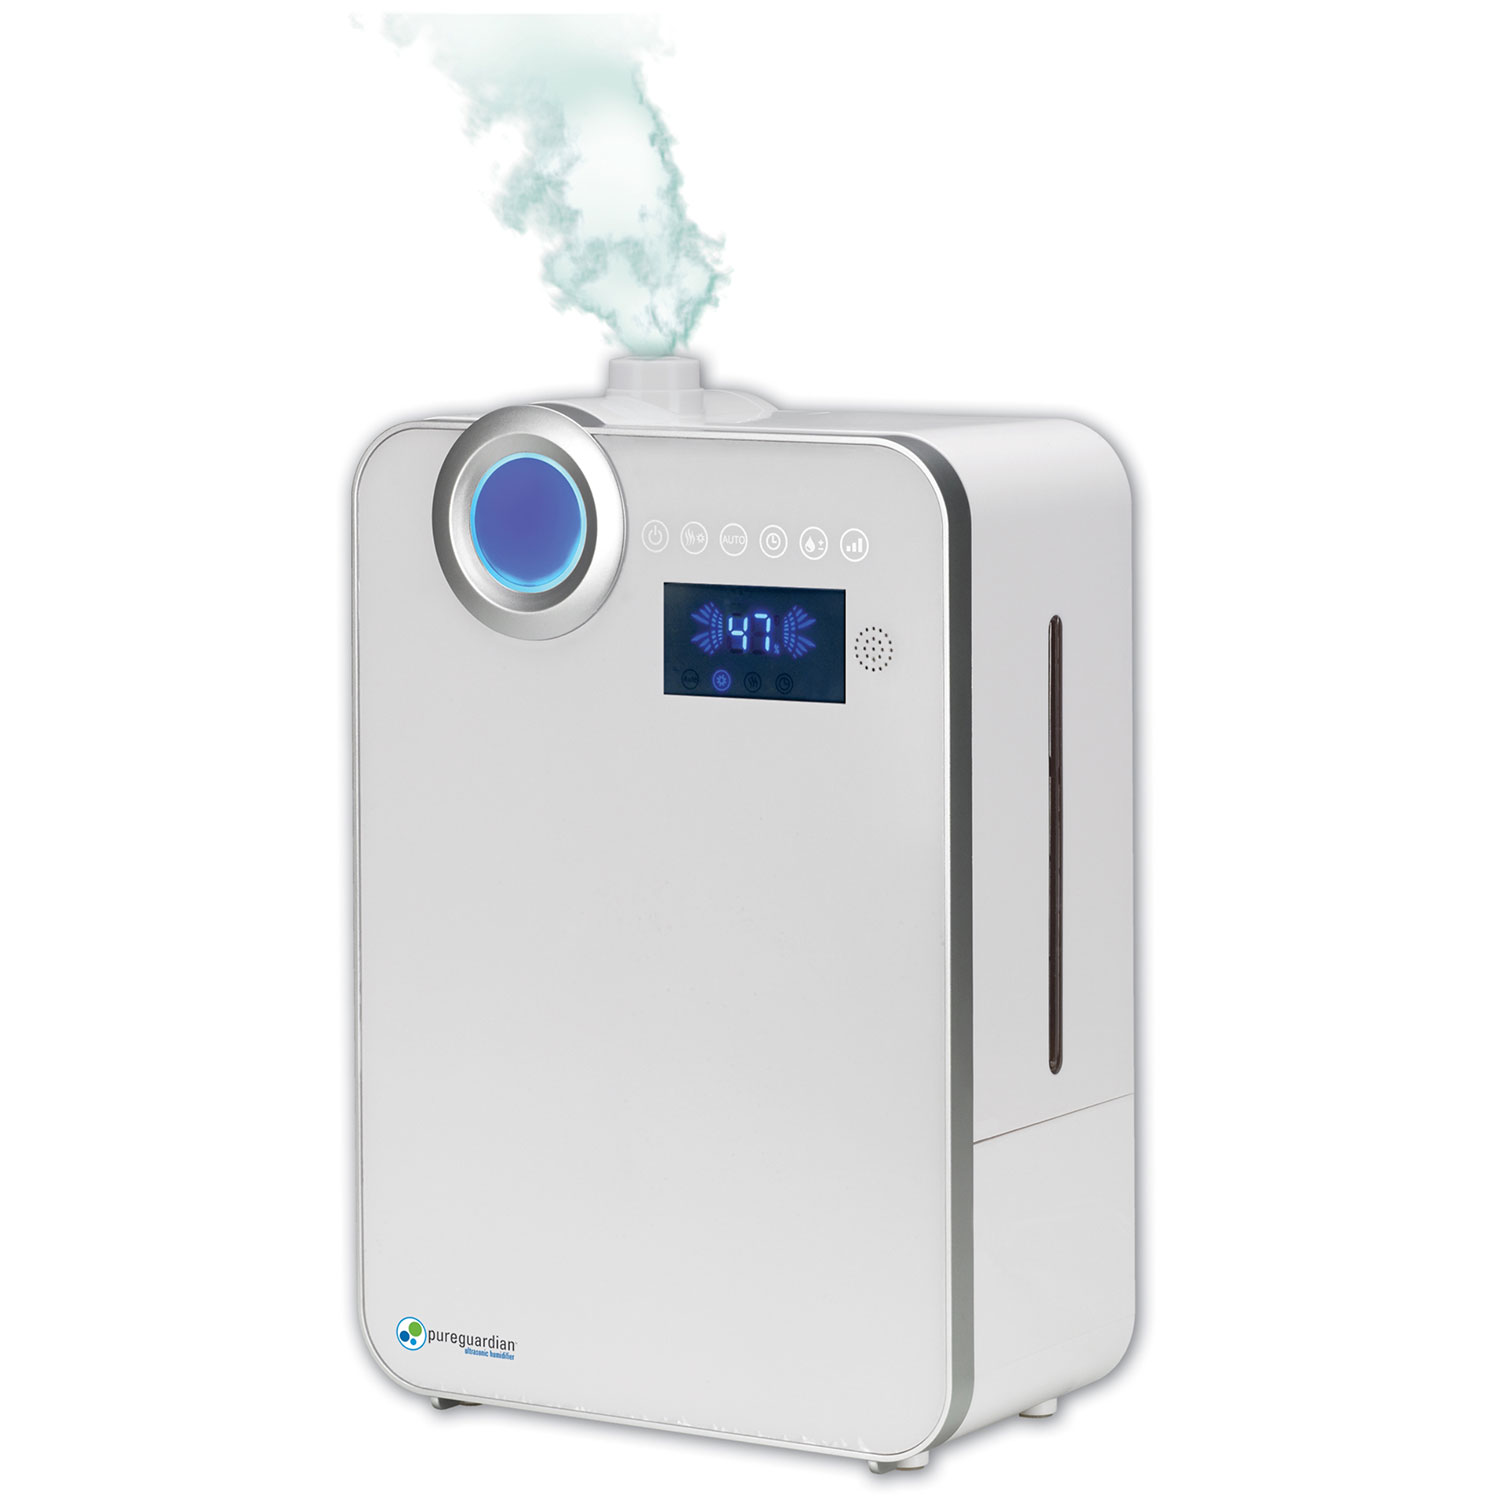 Small Dehumidifier For Bedroom Humidifiers Home Comfort Air Quality Best Buy Canada